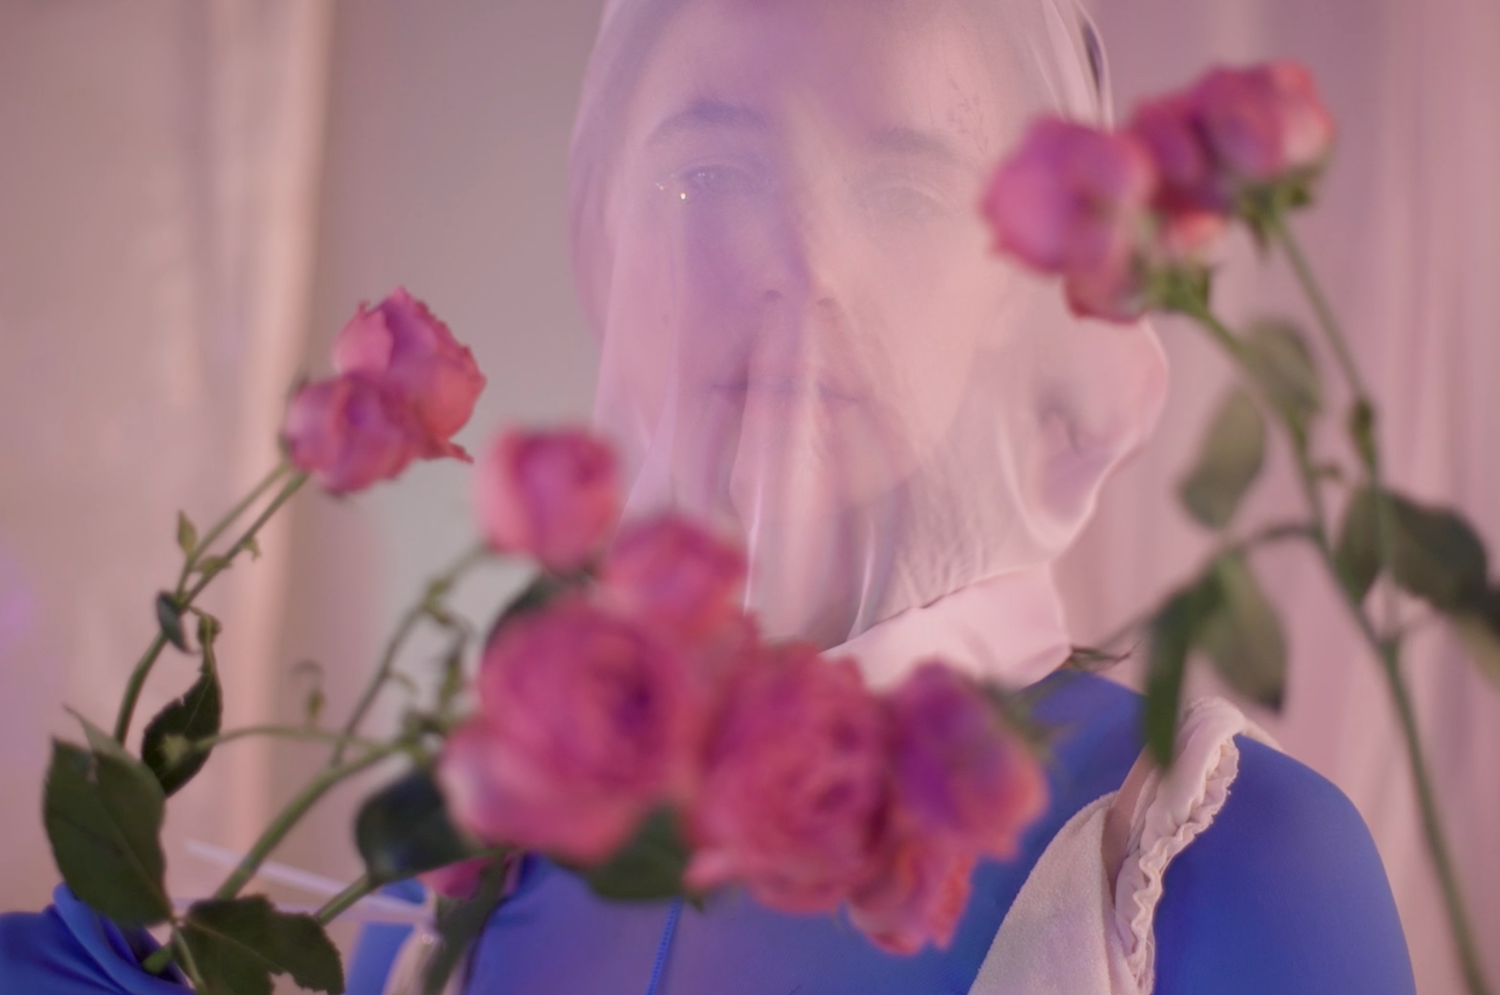 What is beauty? This electronic music video denounces the pressure on women to be perfect